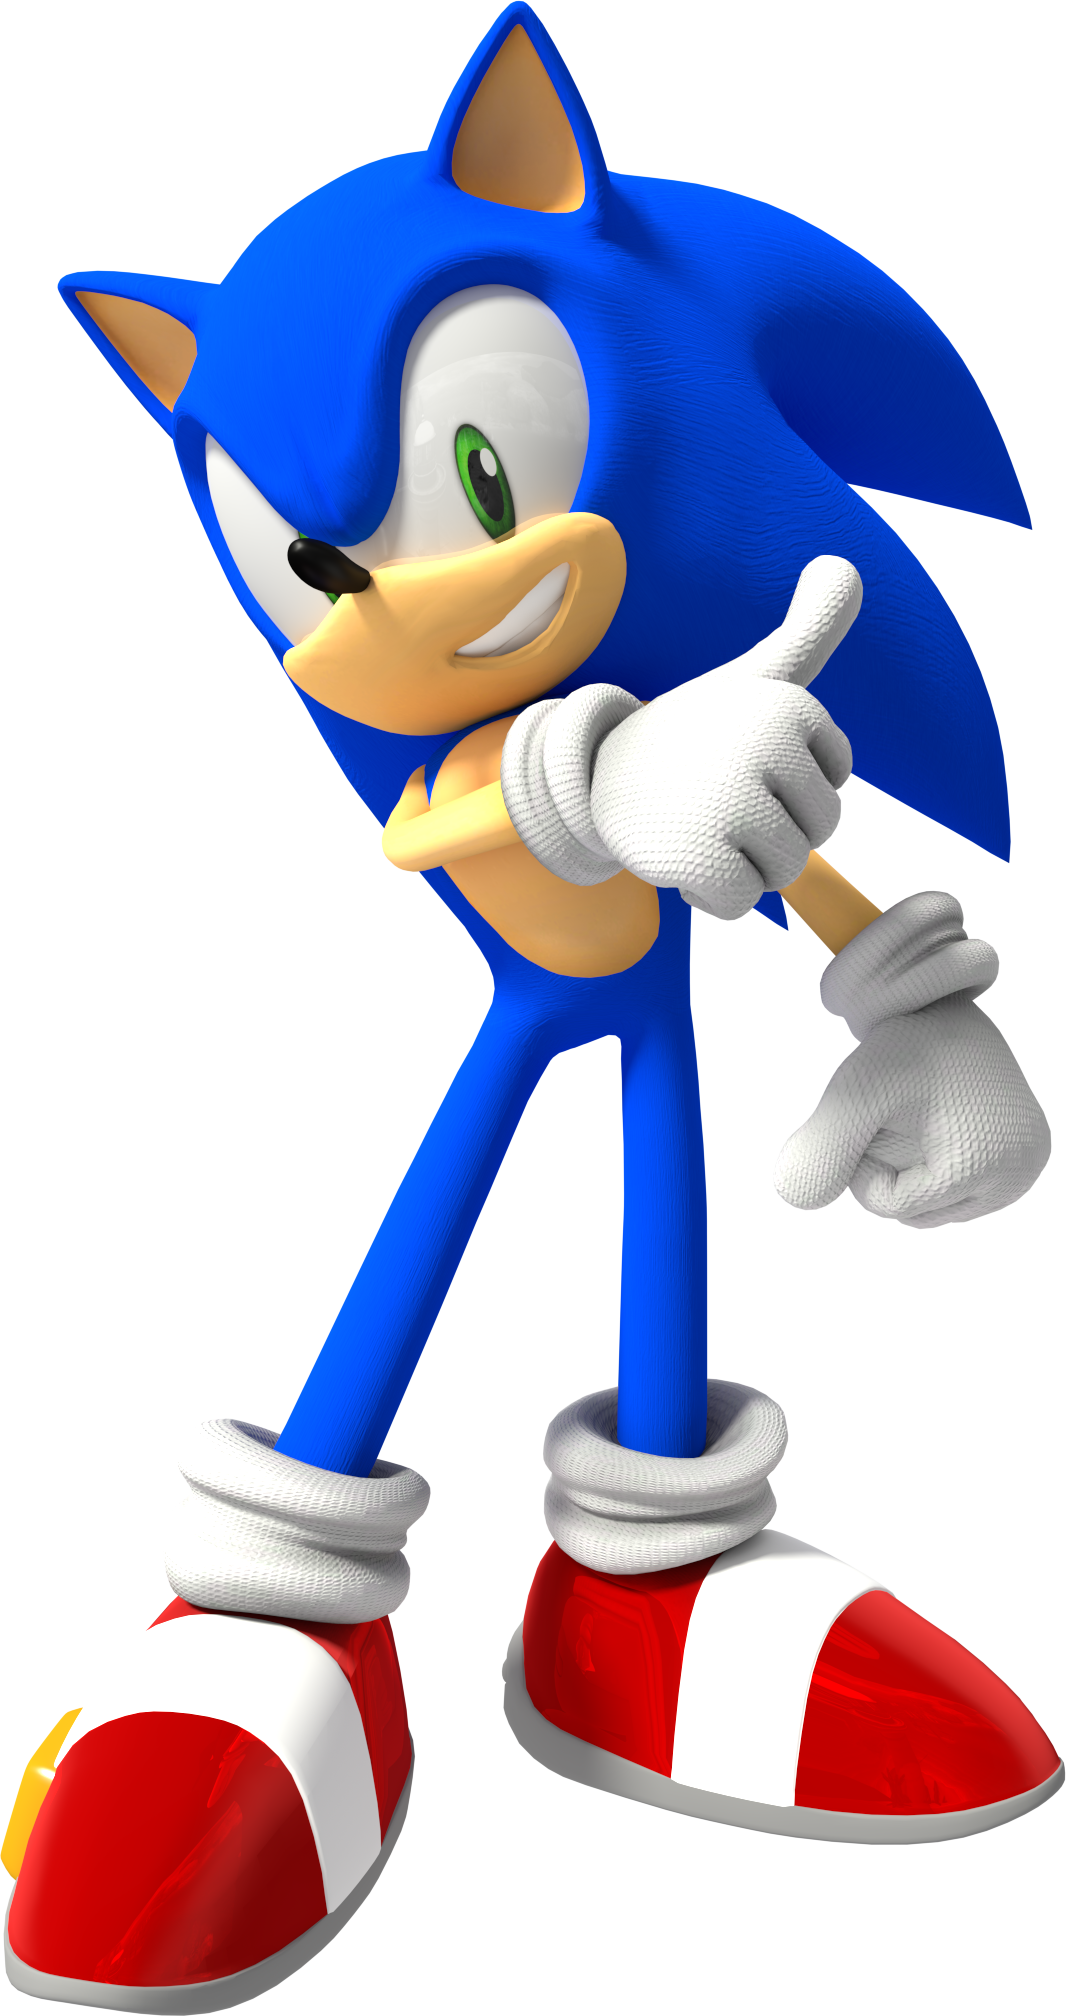 Hd transparent images pluspng. Sonic png clip art free stock